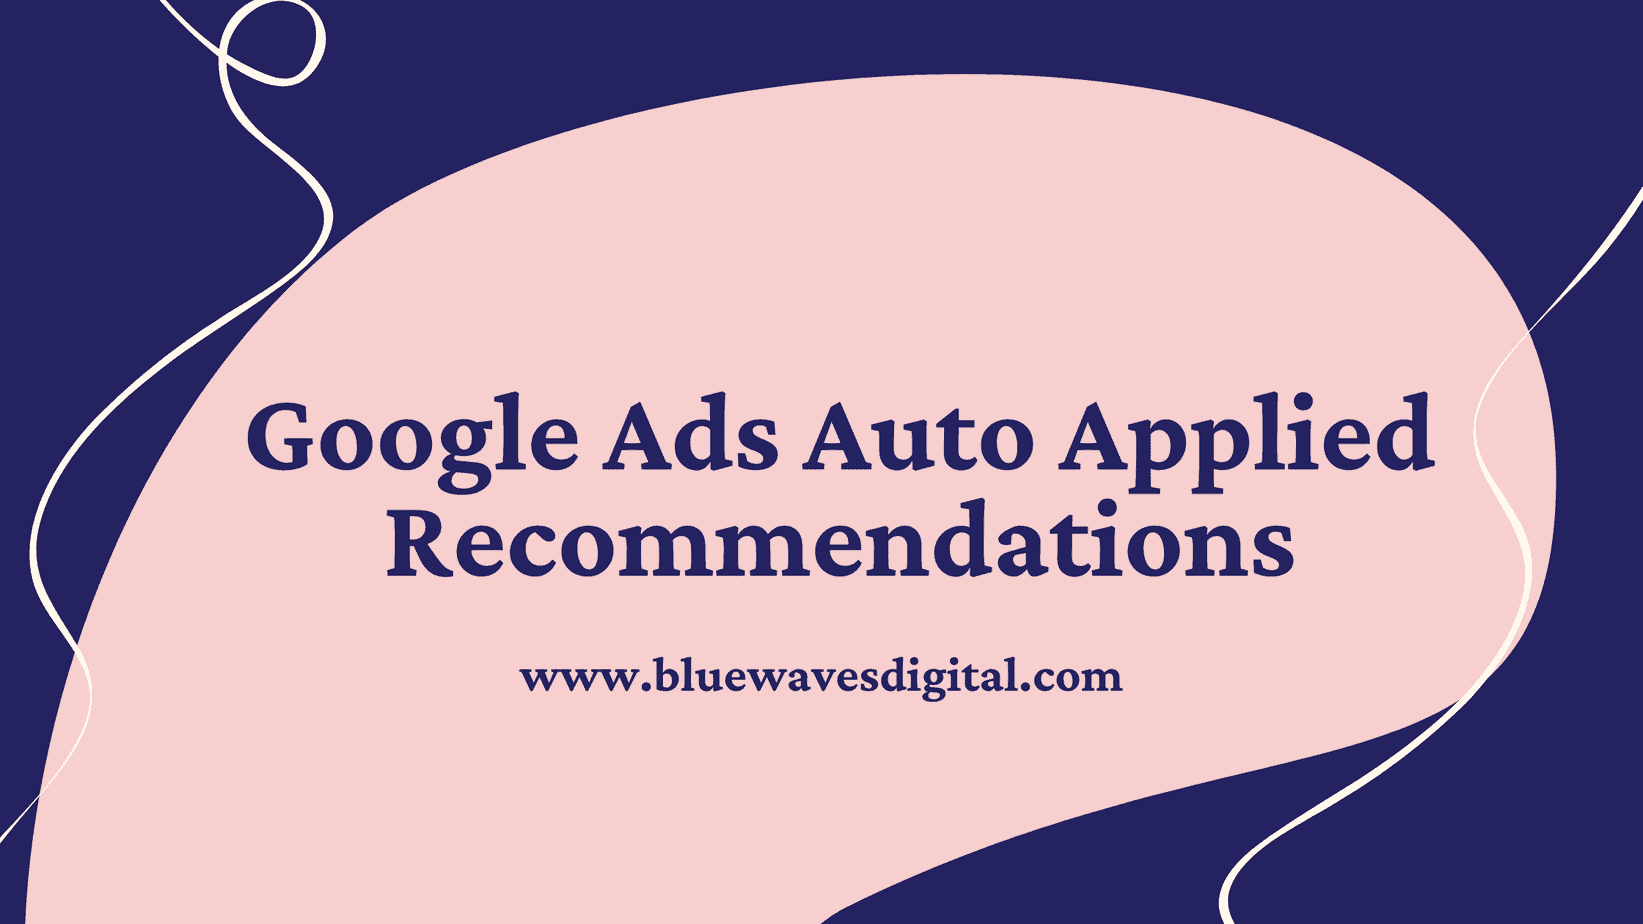 Google Ads Auto Applied Recommendations - Here Is How You Can Use It